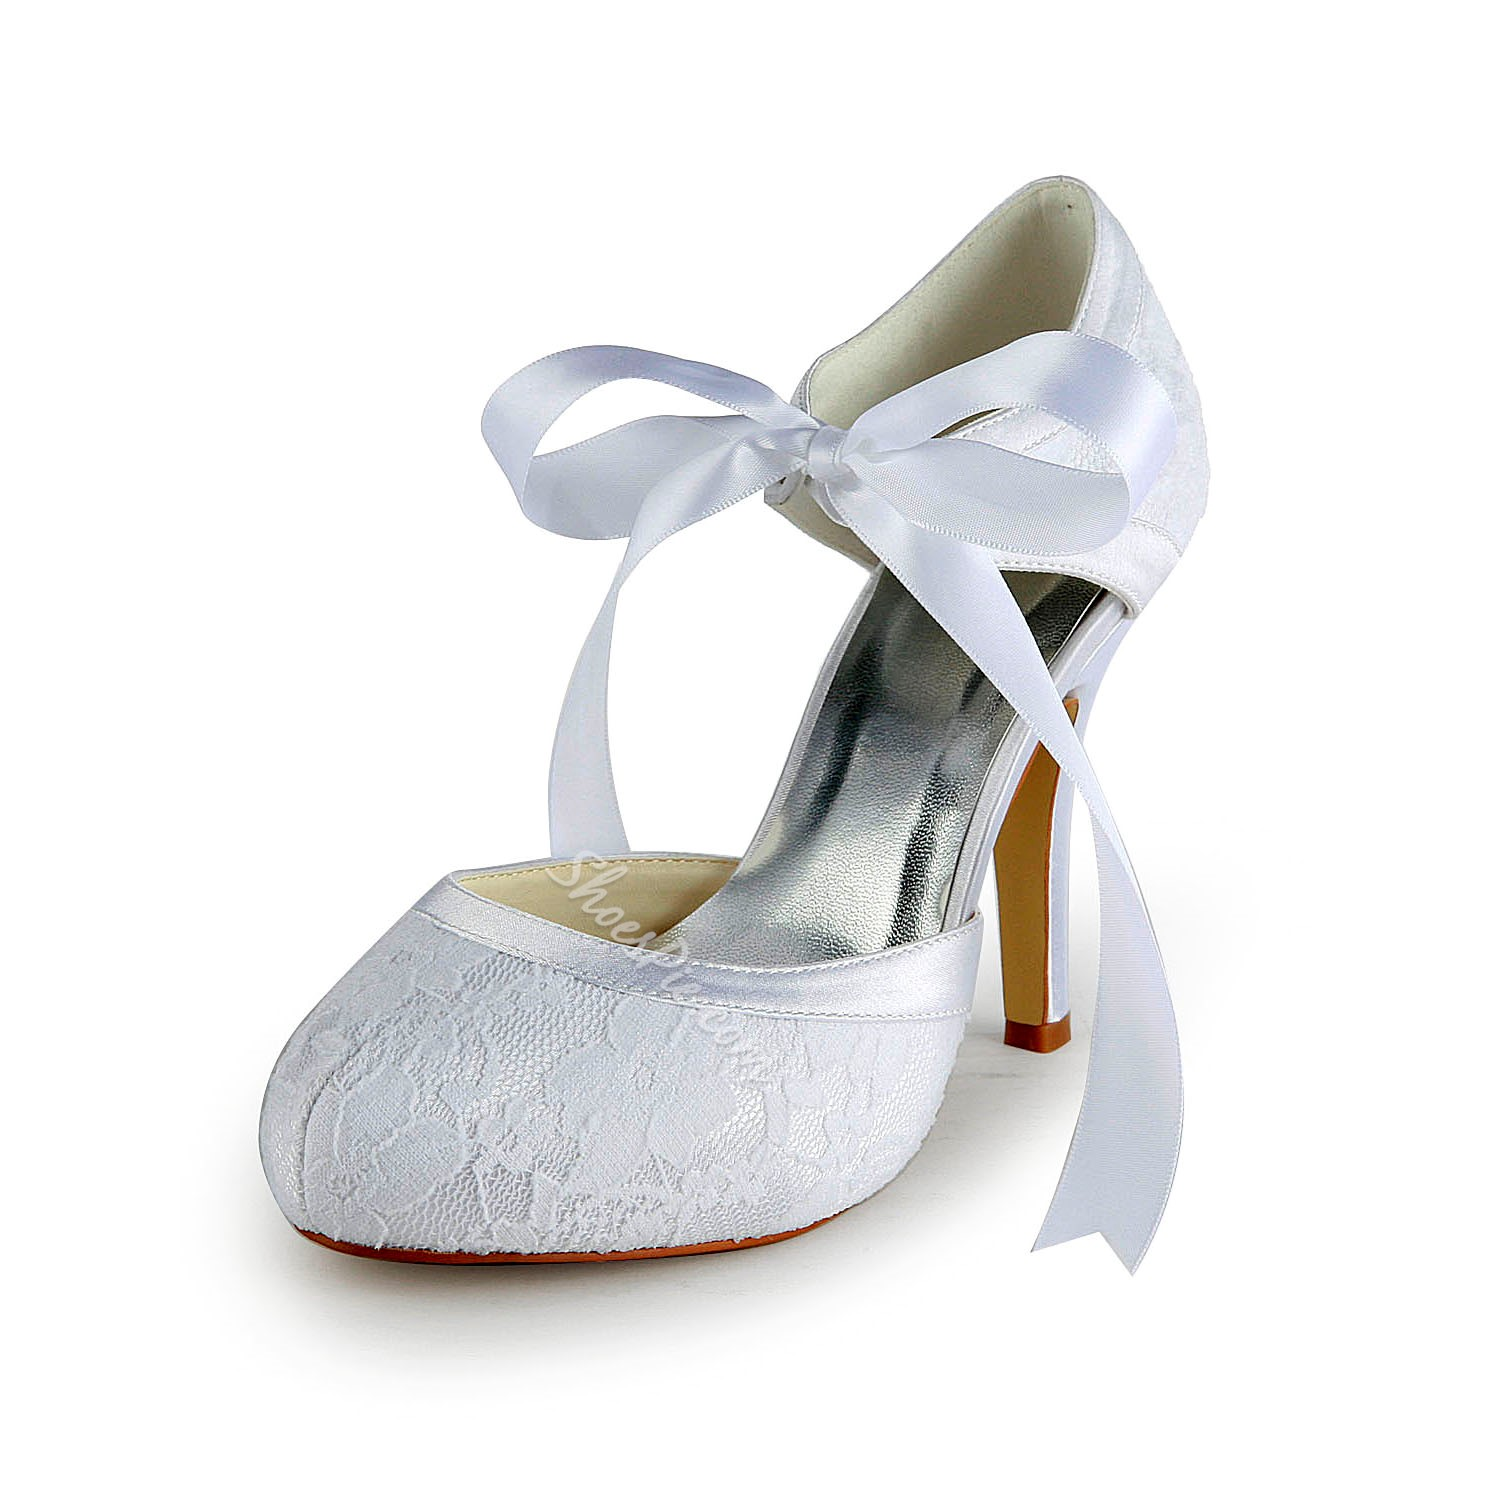 New Closed-toe Lace Wedding Shoes